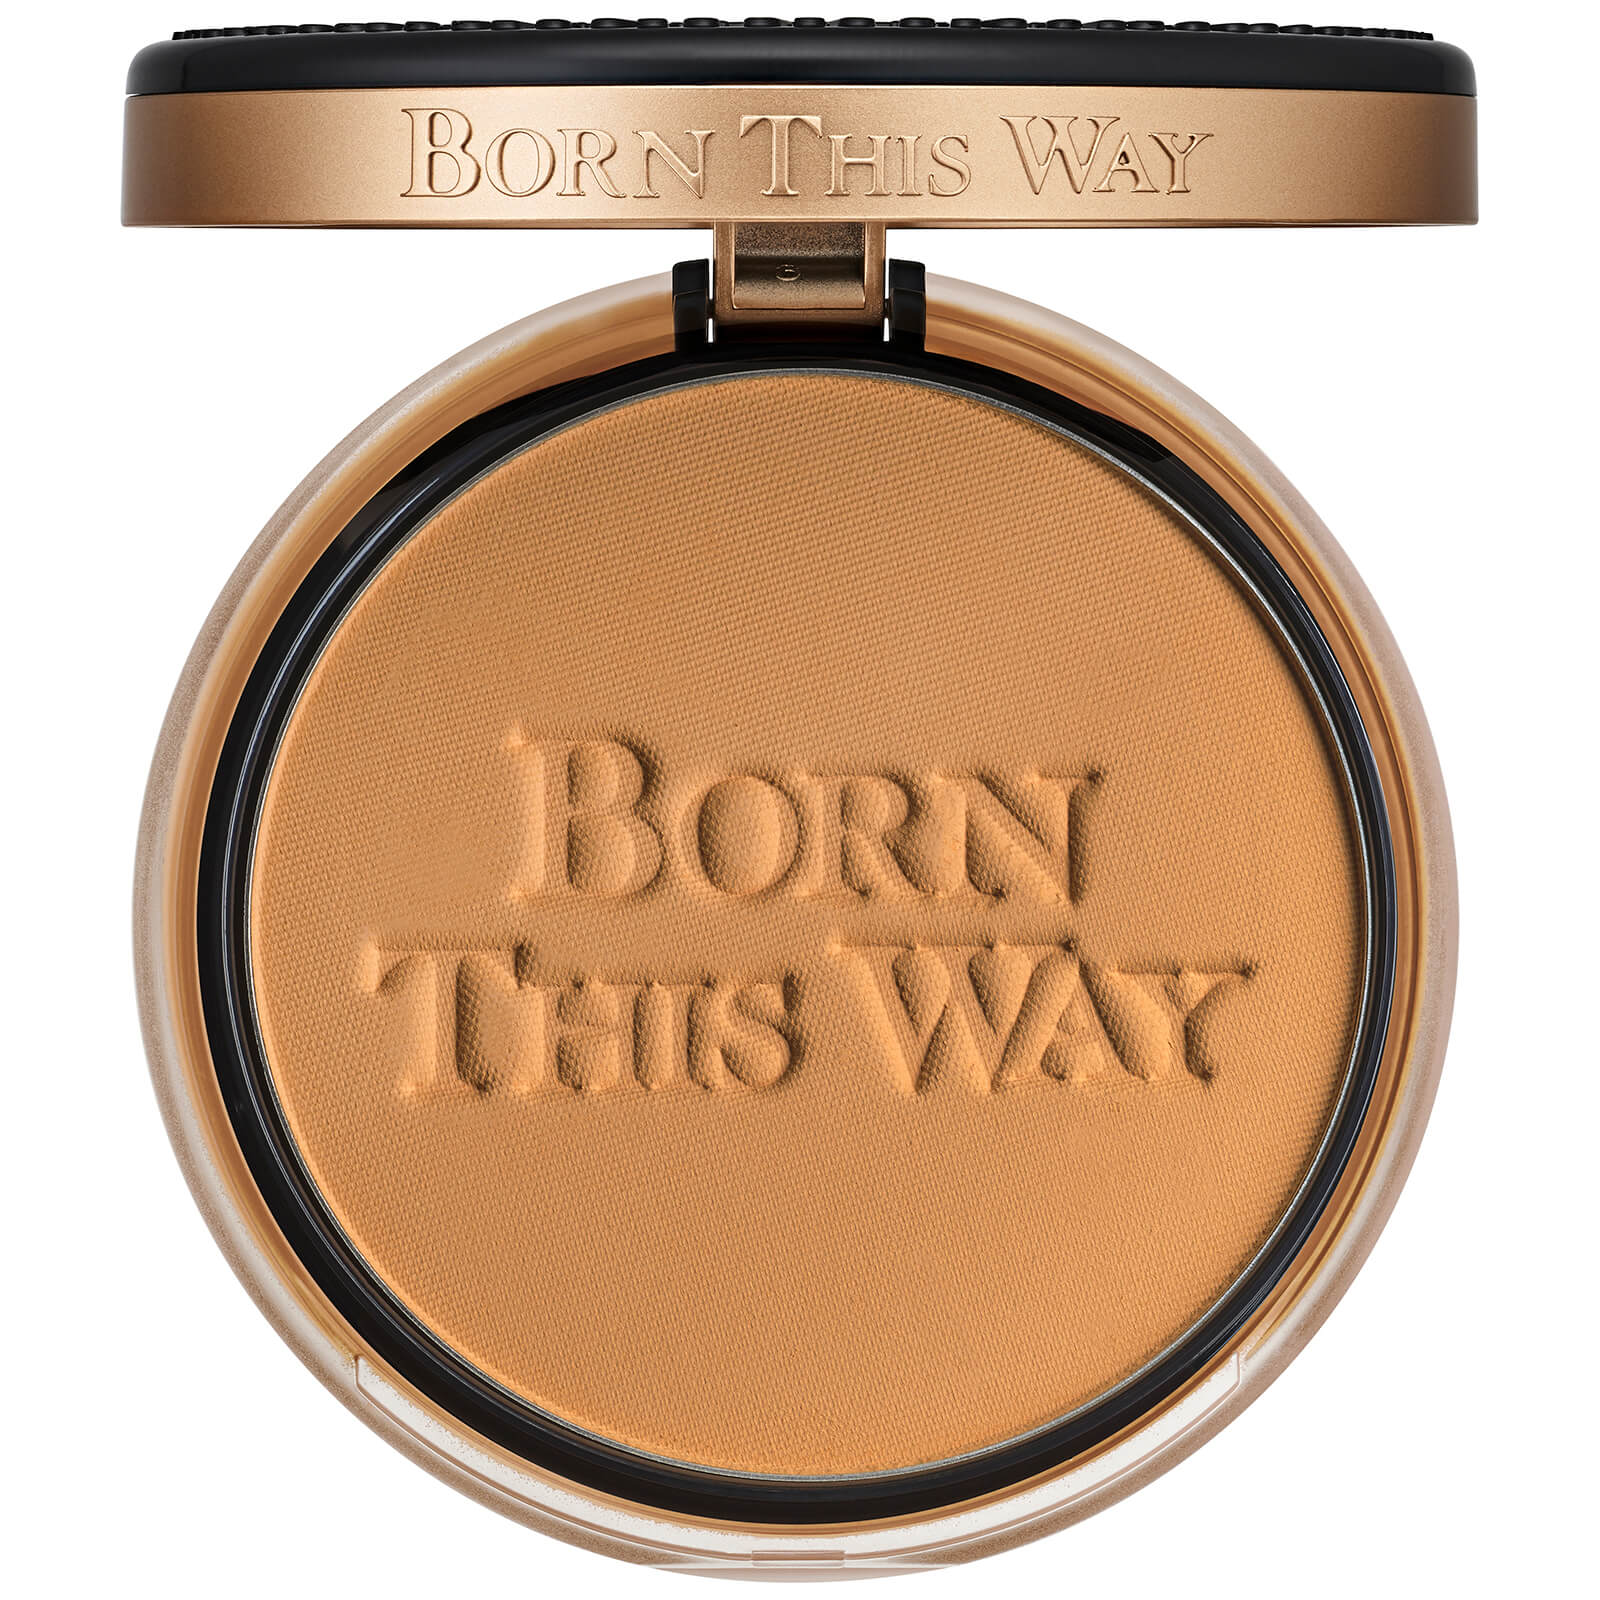 Too Faced Born This Way Multi-Use Complexion Powder (Various Shades) - Warm Sand